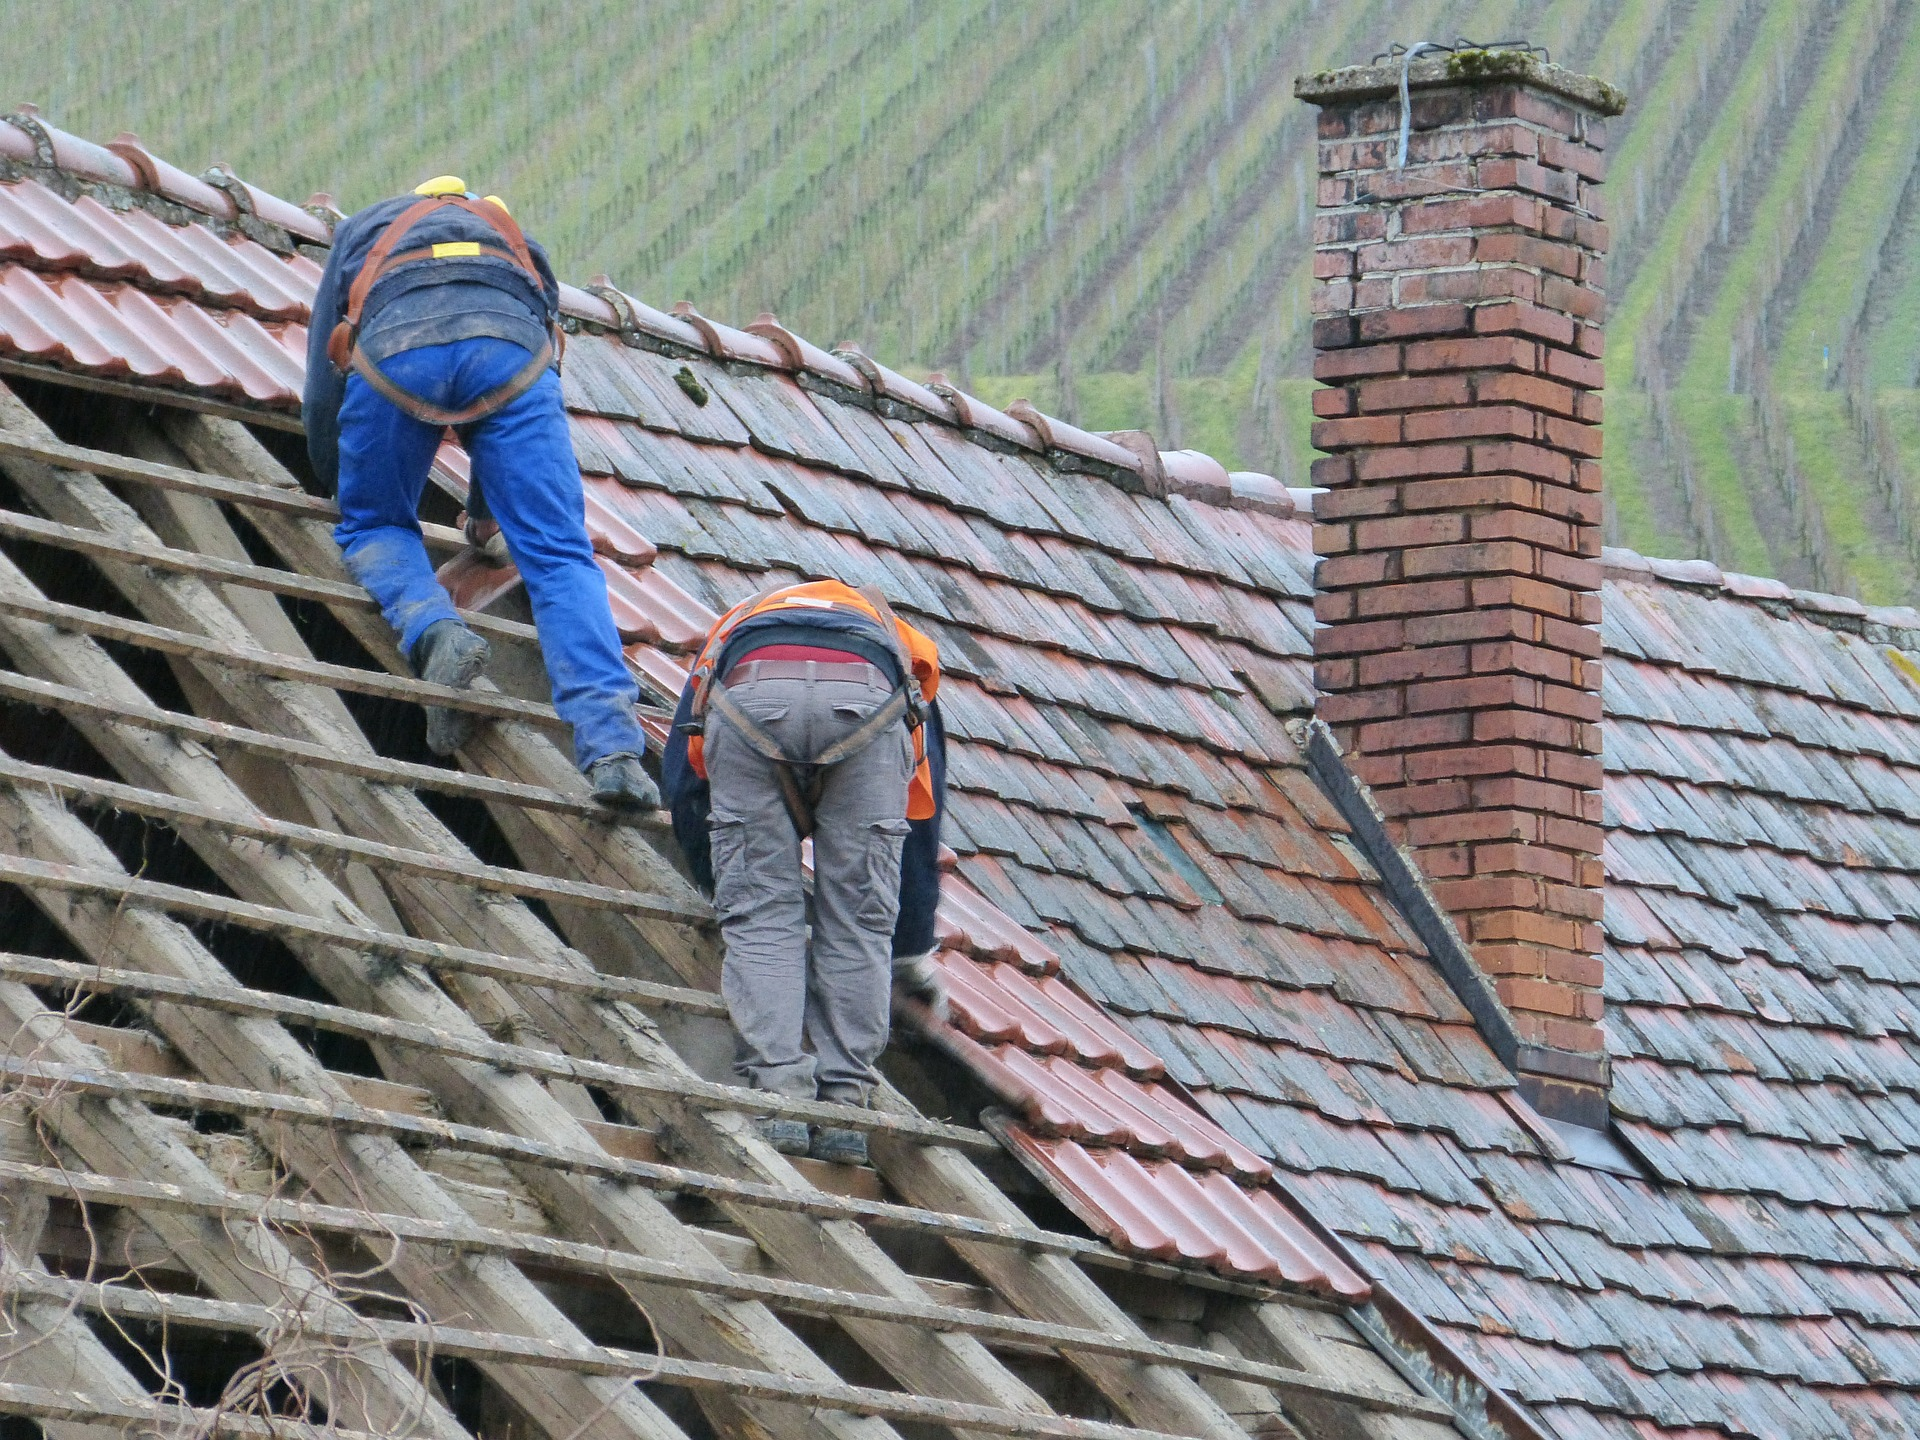 How Long Should Well-Built Chimneys Last?